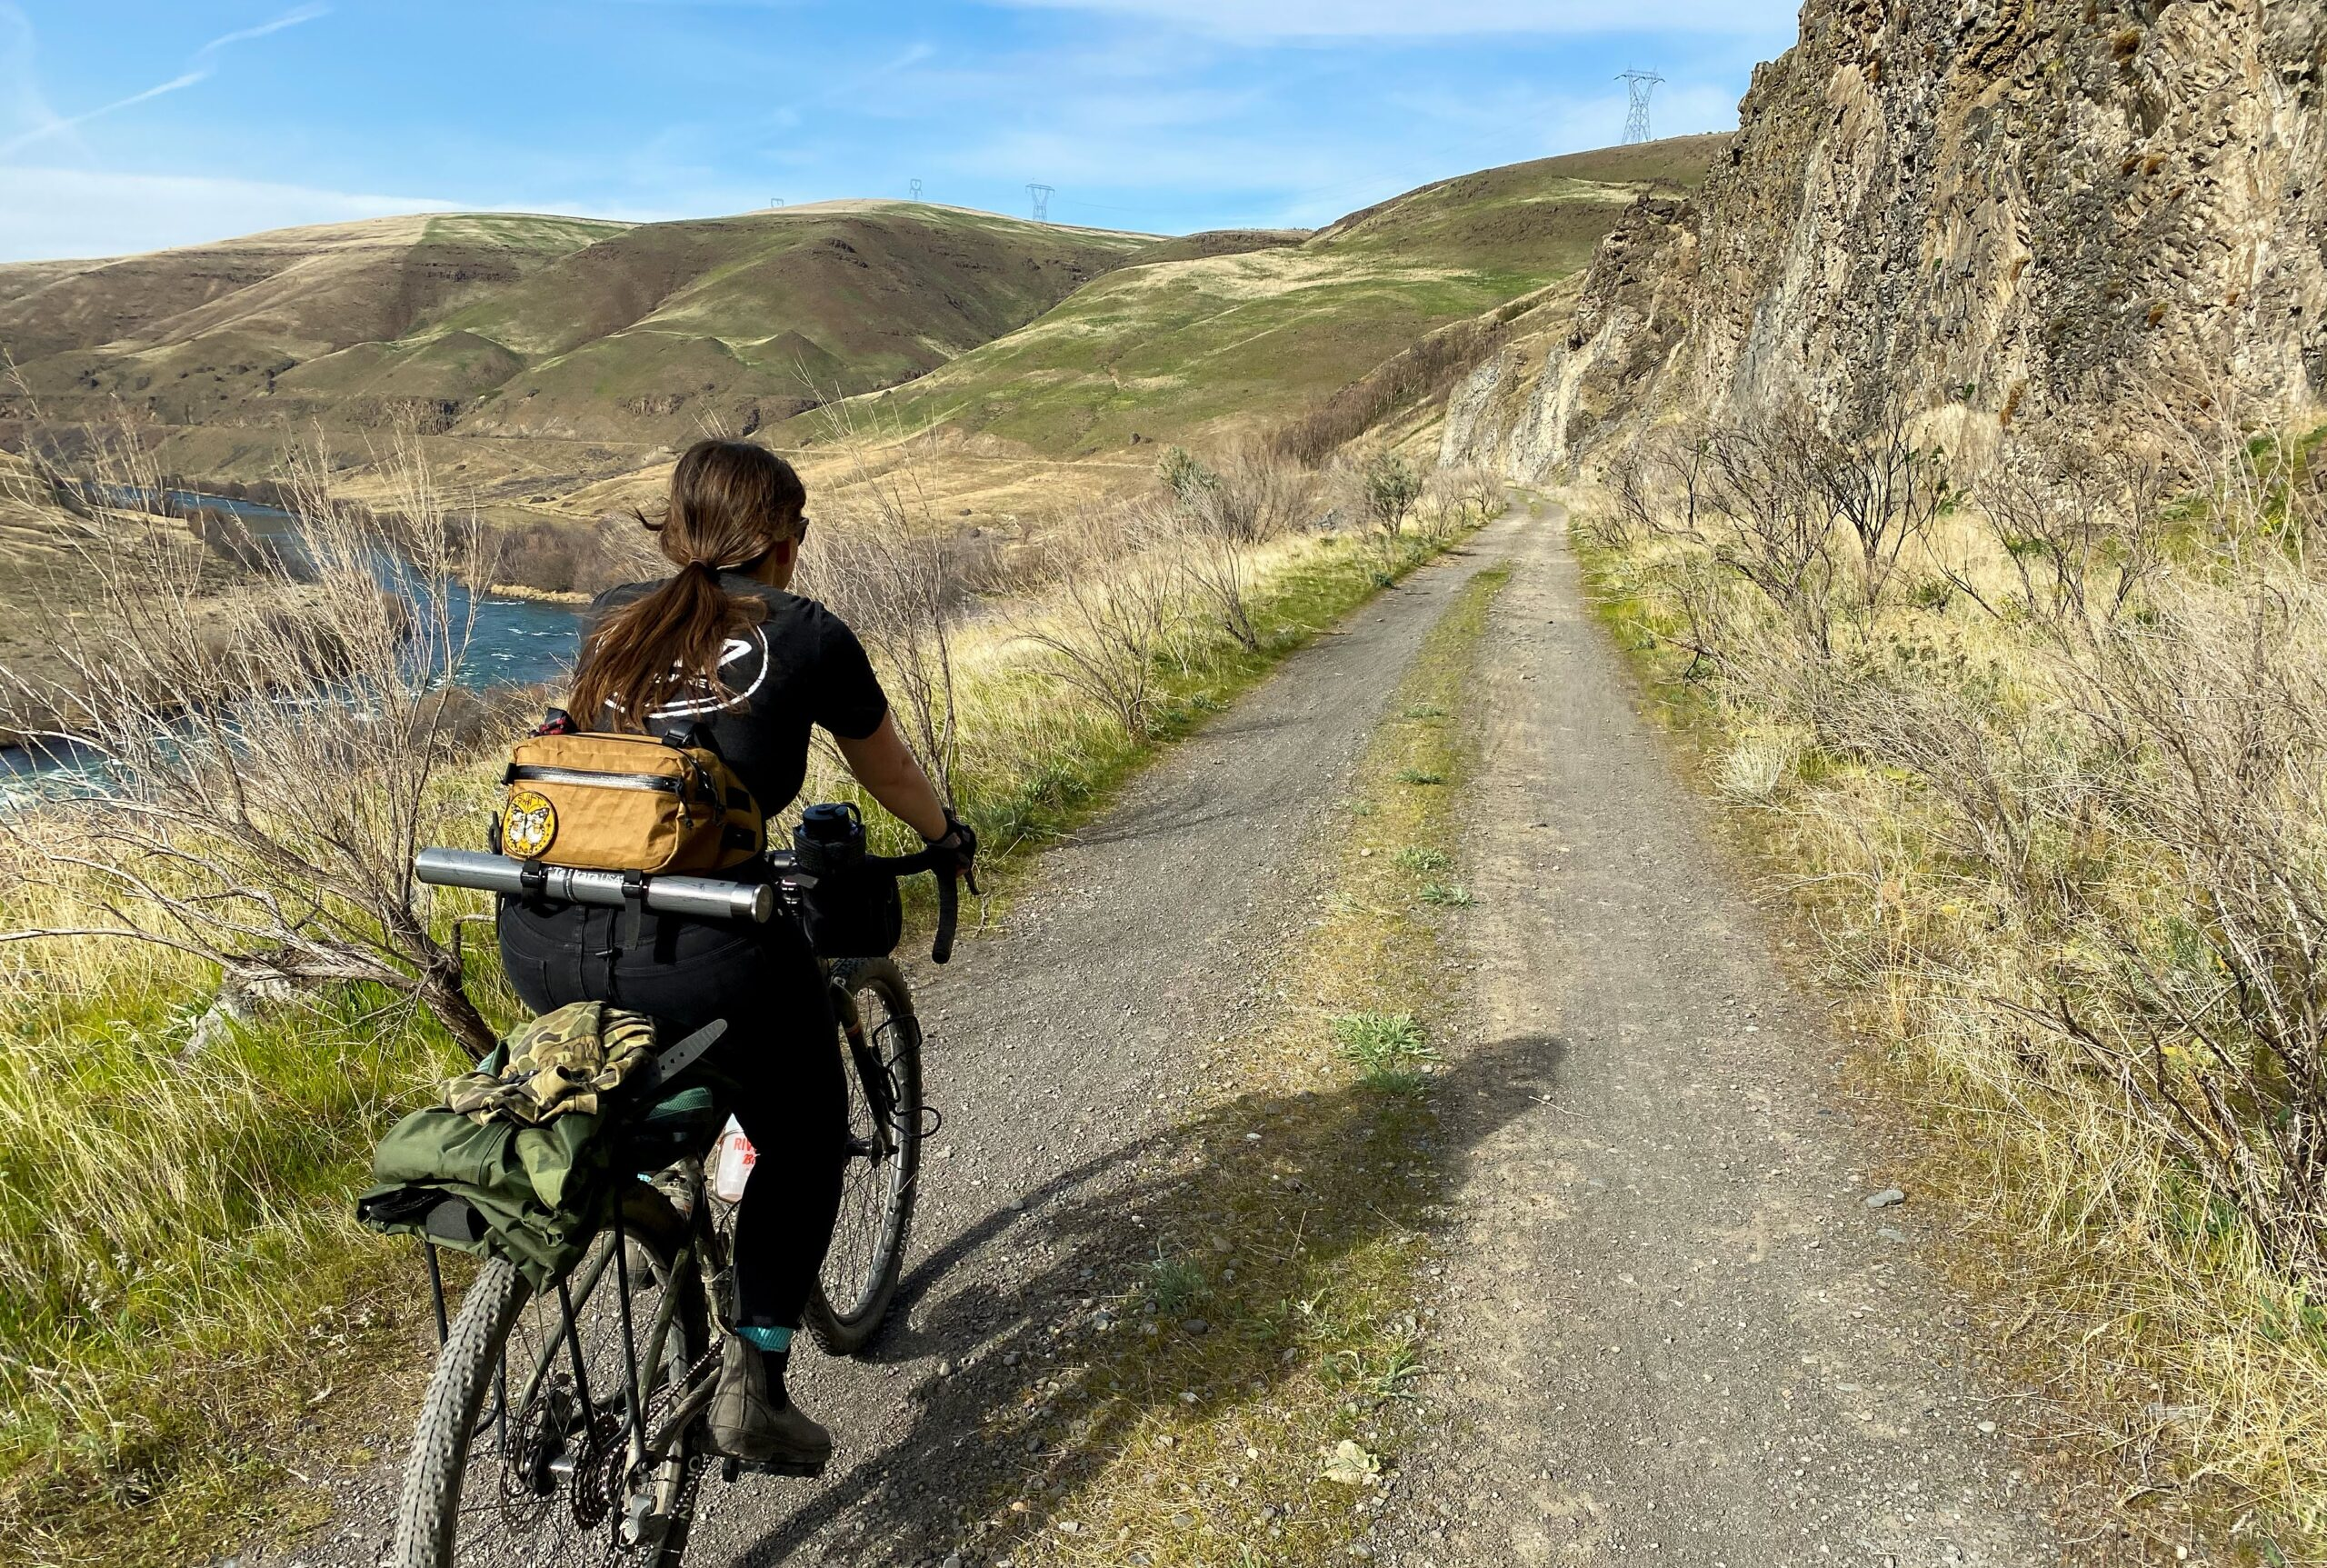 Image from the Gravel Guide of Cyclist riding along the river